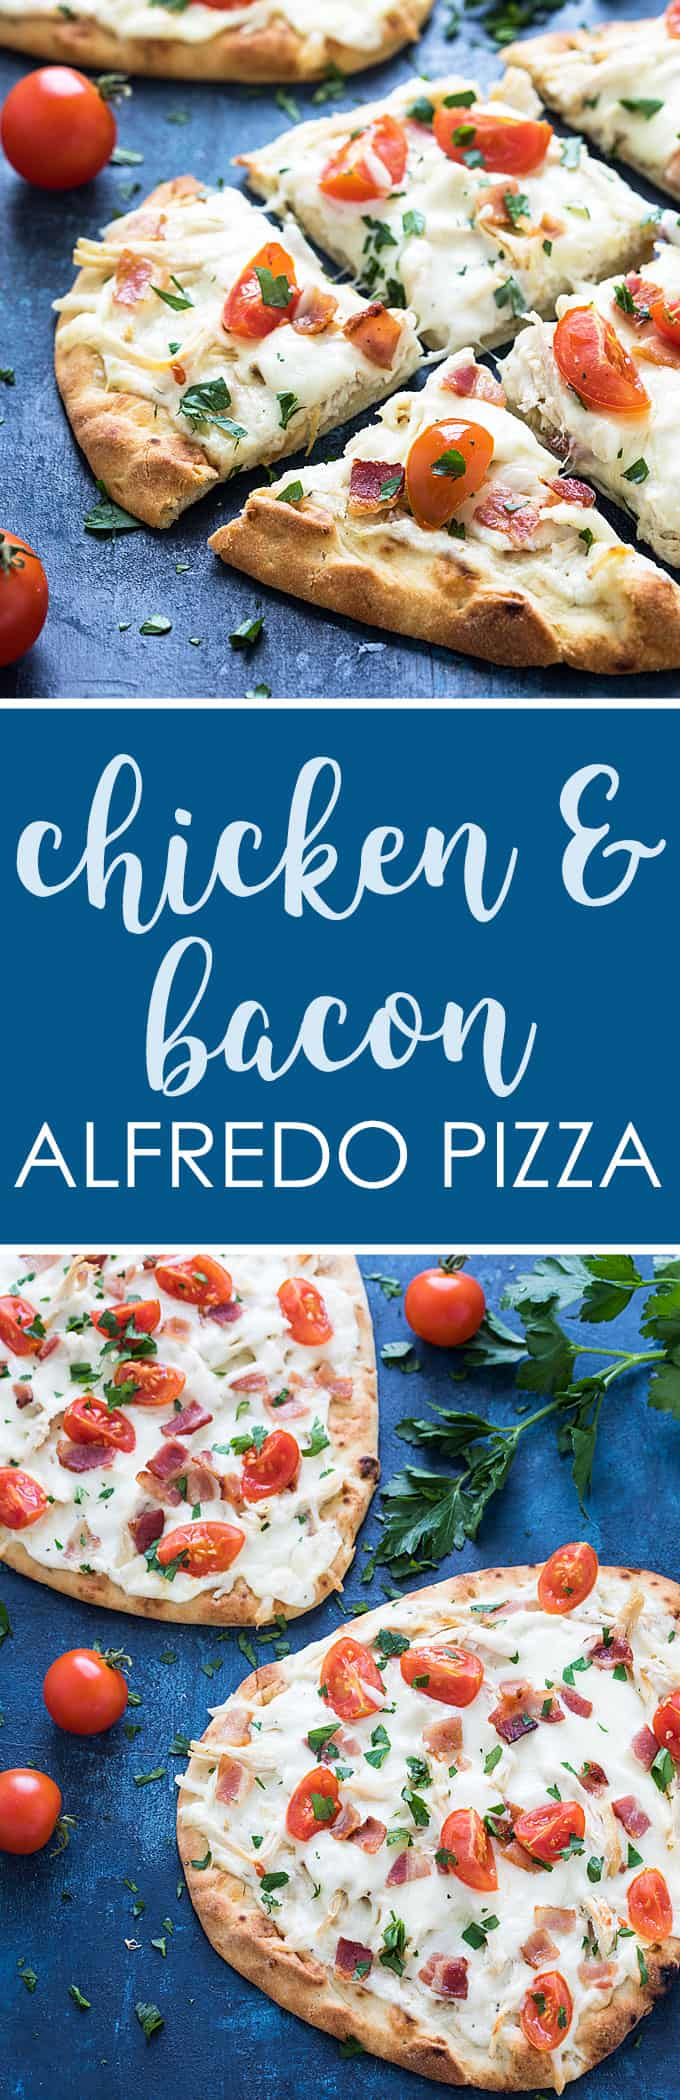 Chicken Bacon Alfredo Pizza - With a few shortcuts this savory pizza comes together in just 15 minutes. Pizza night has never been easier!